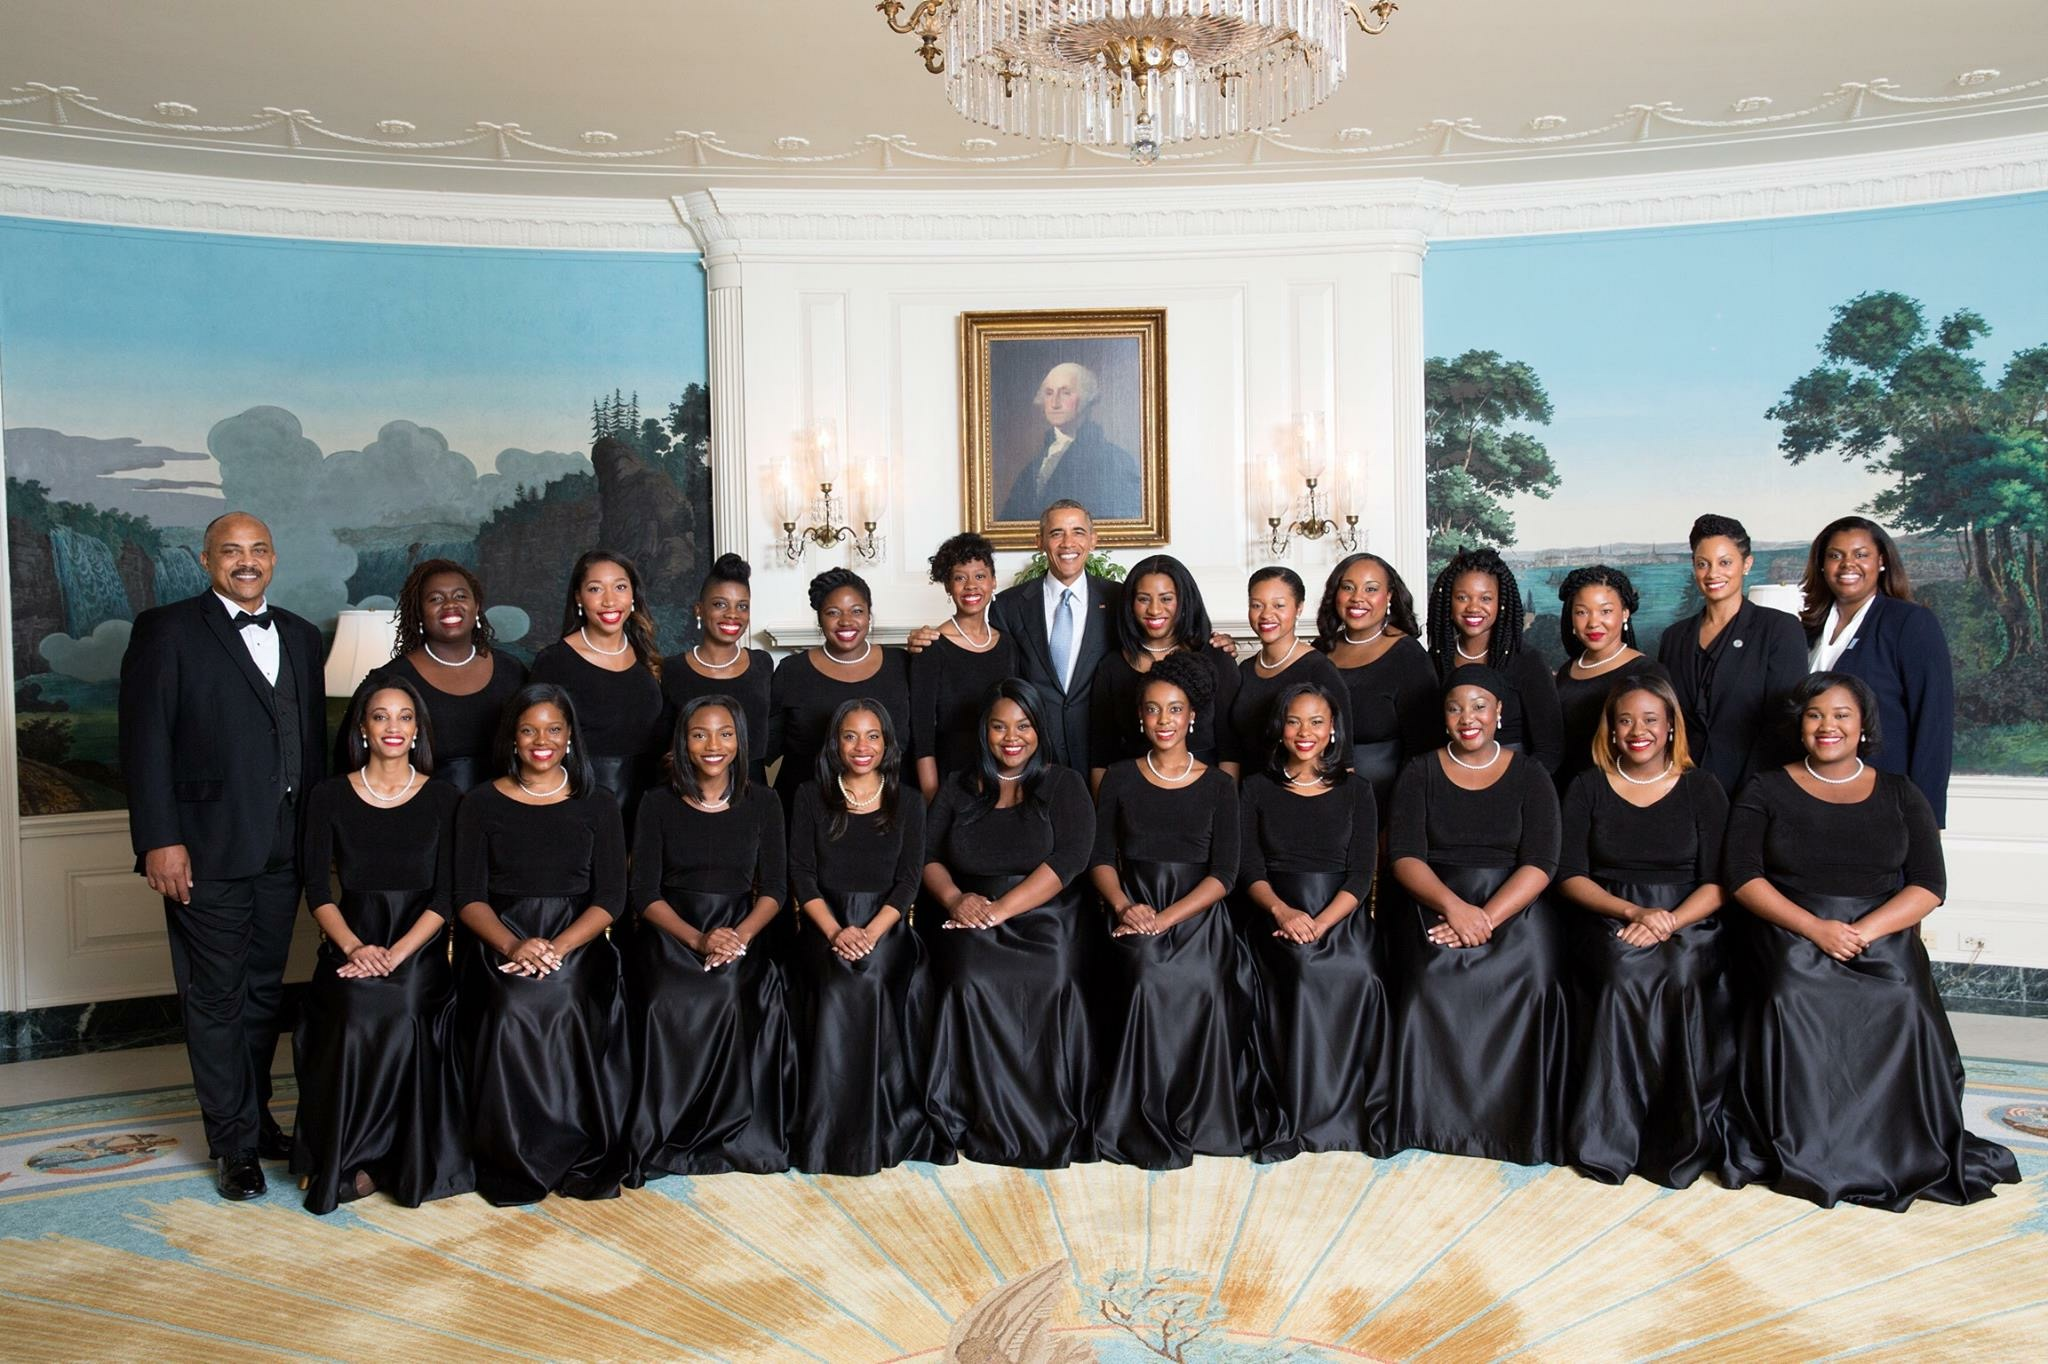 Glee Club 2016 at White House